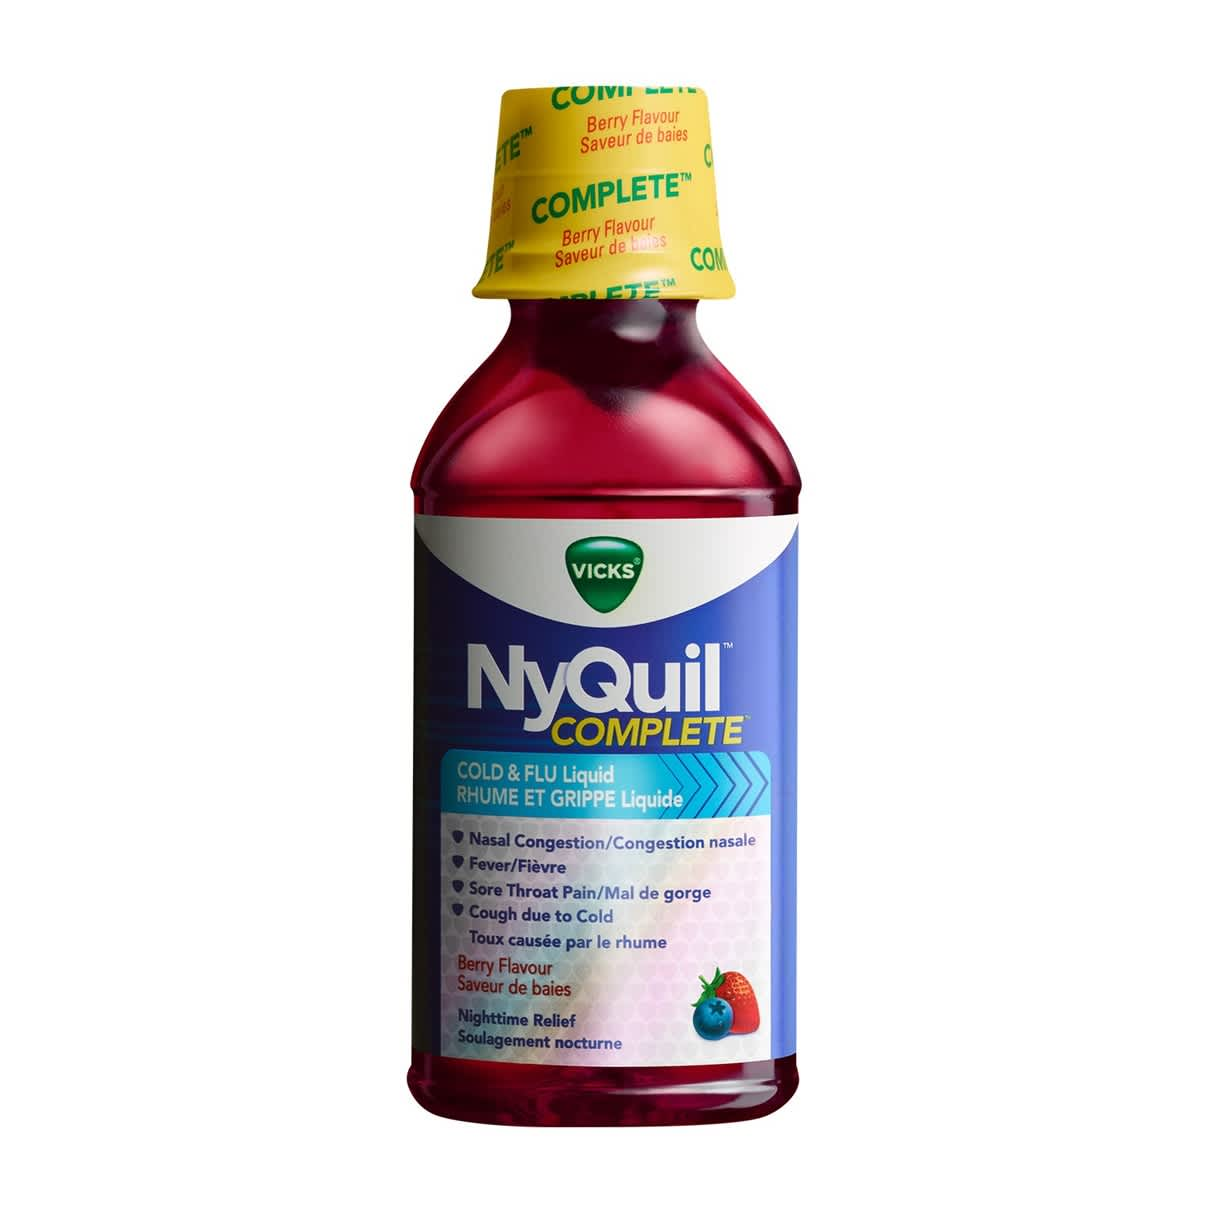 vicks-nyquil-severe-cold-and-flu-liquid